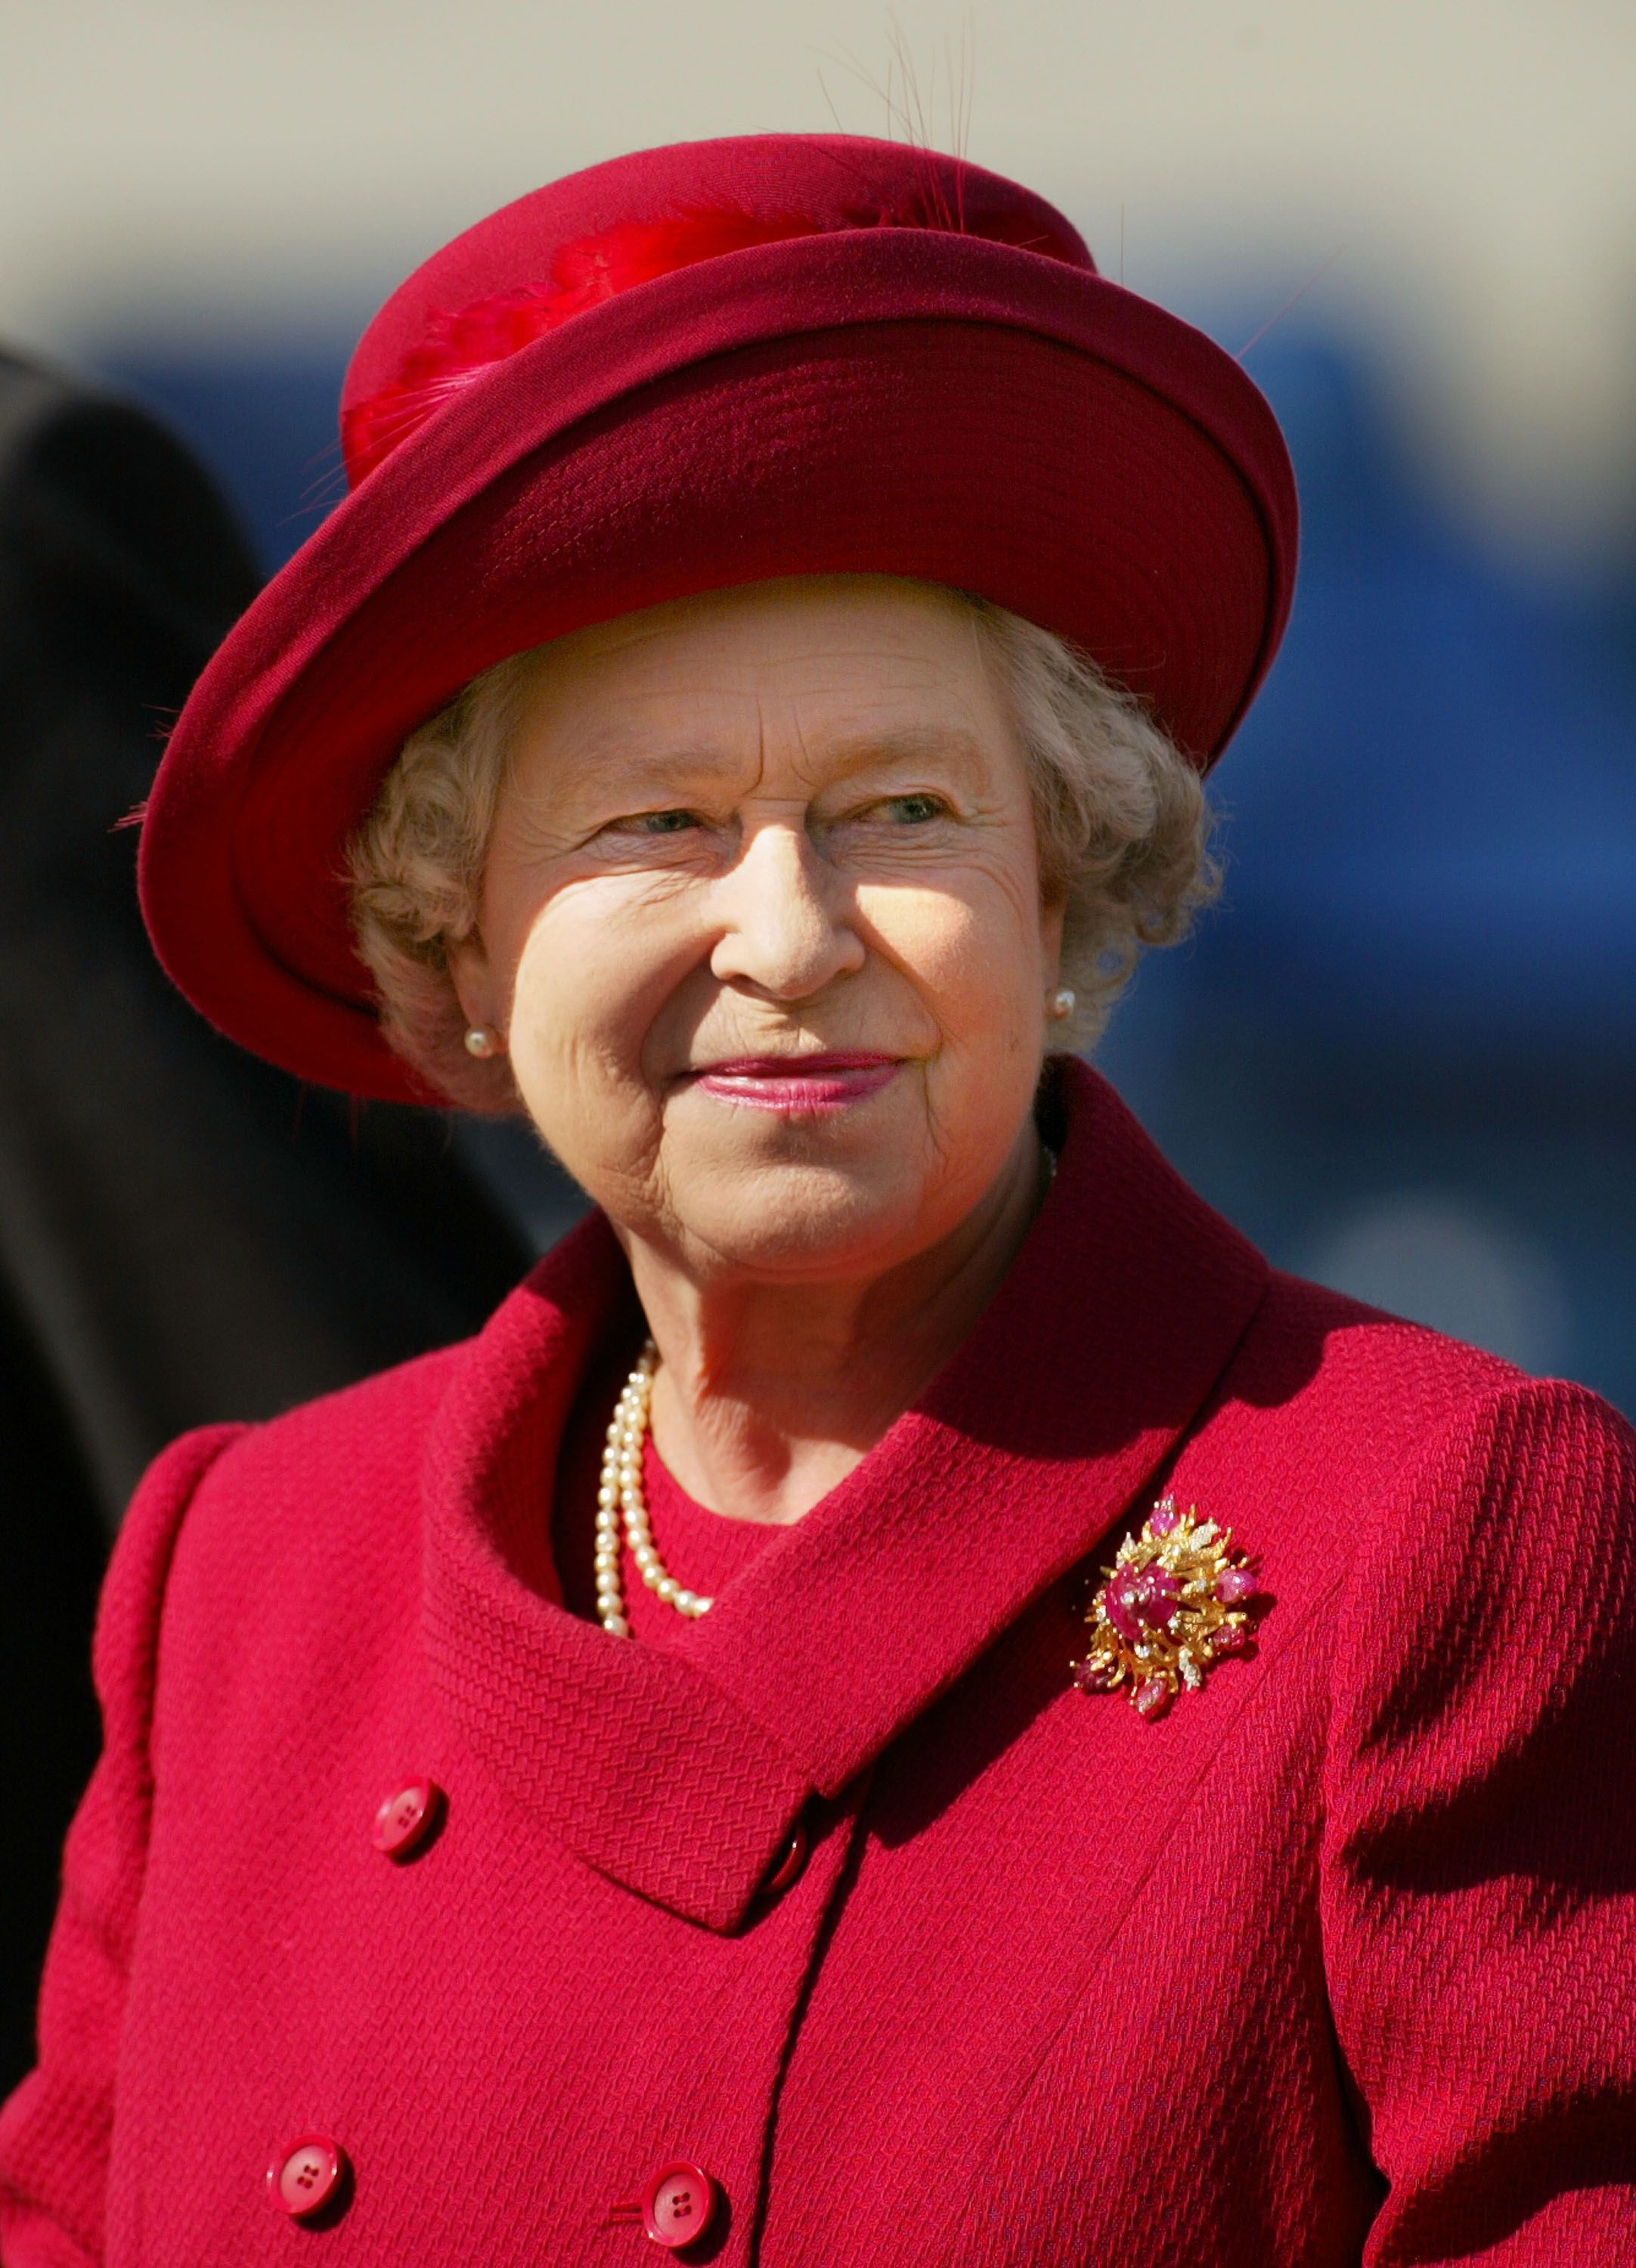 Queen Elizabeth at The Royal Windsor Horse Show at Windsor, Great Park, England in May 18, 2002. | Photo: Getty Images